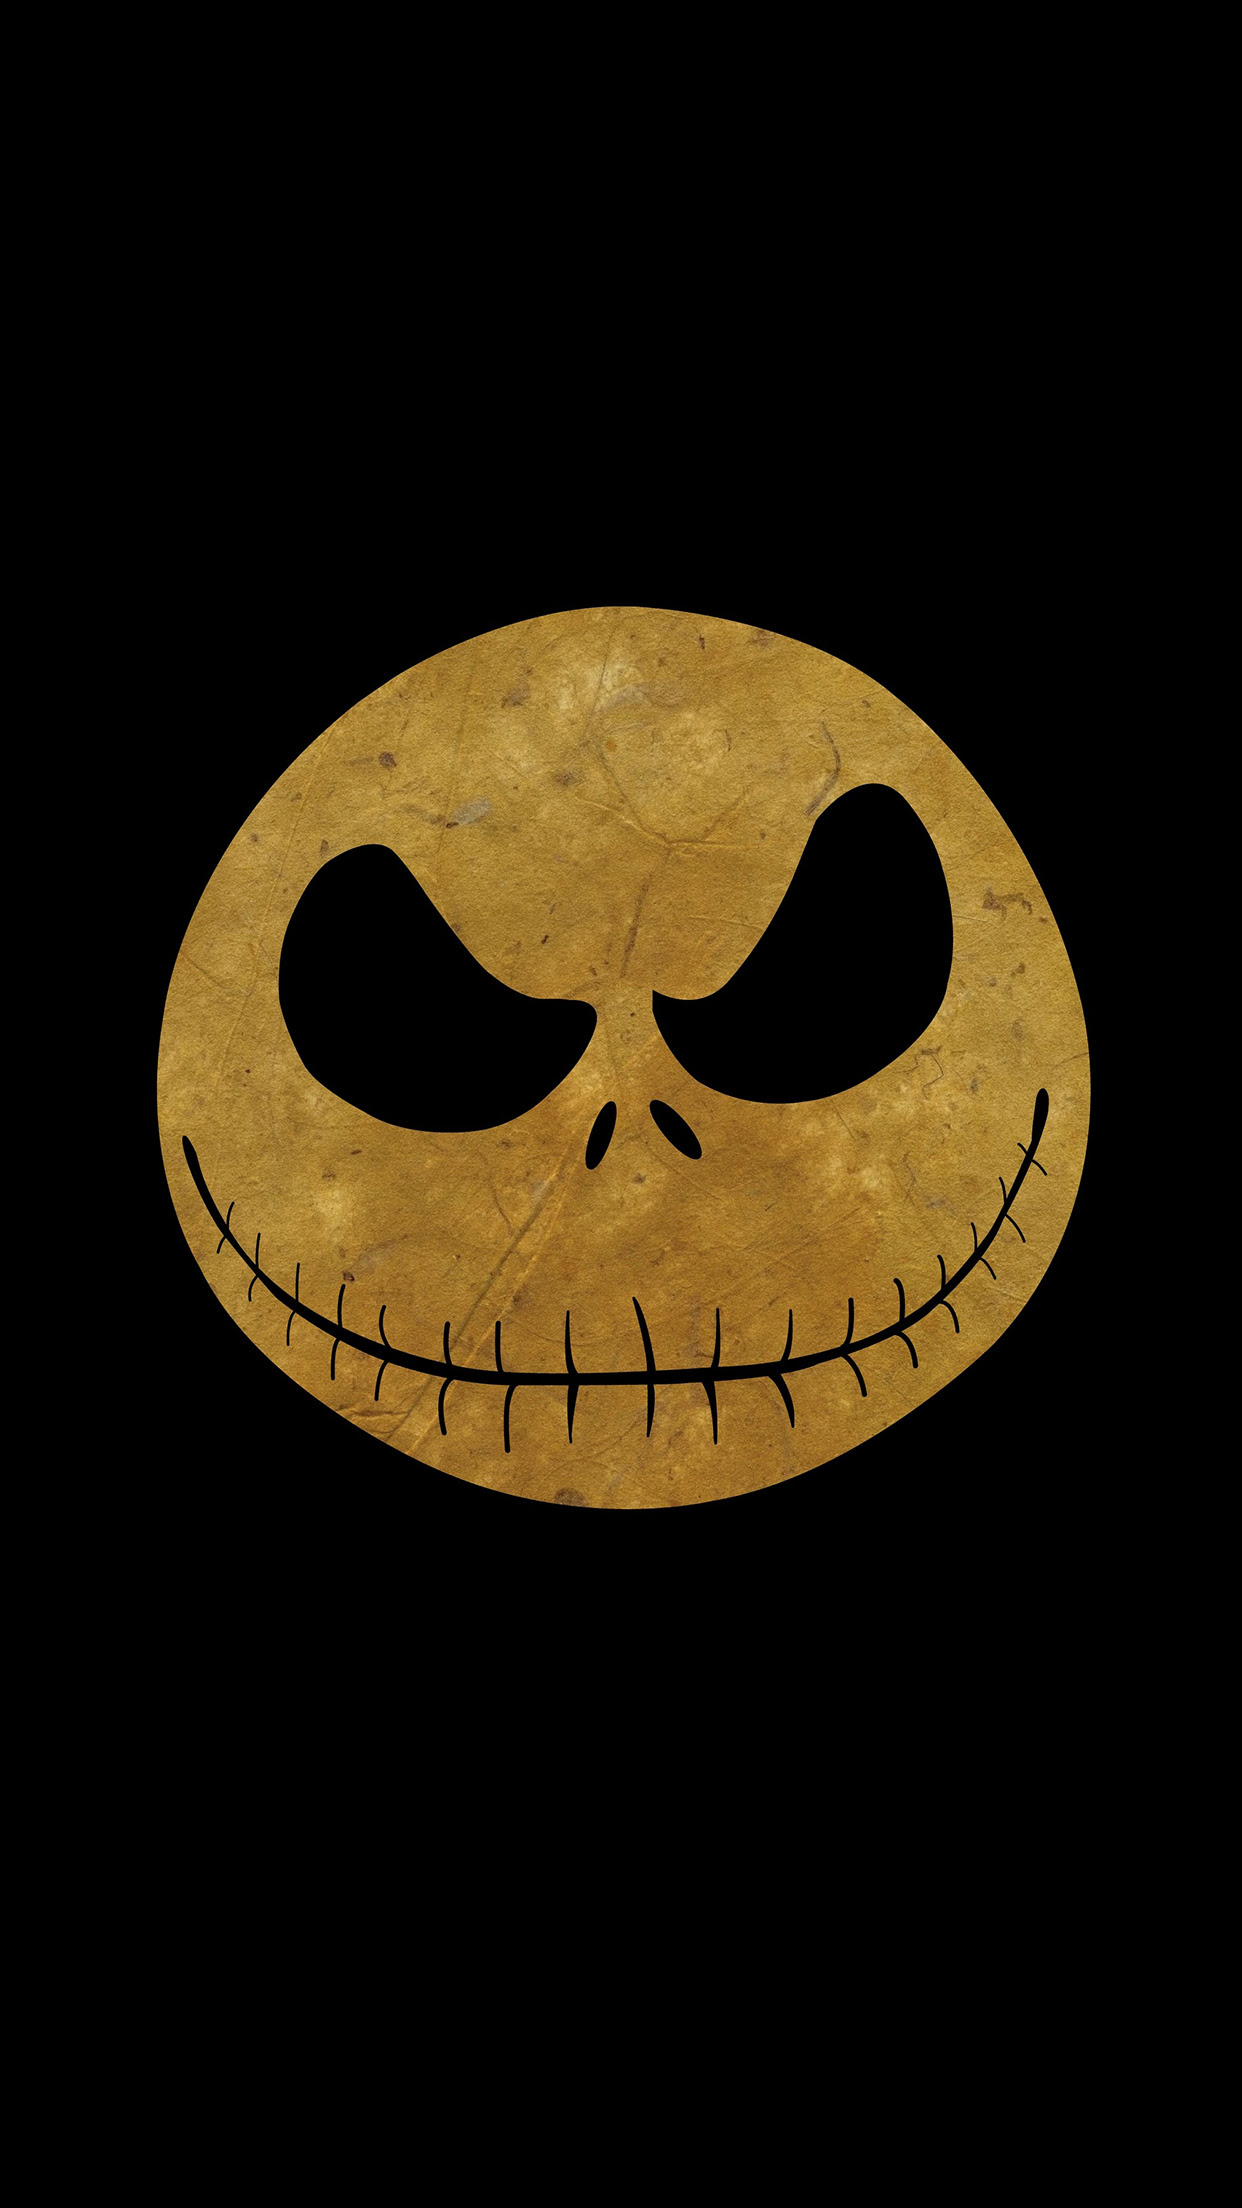 The Nightmare Before Christmas Wallpaper For Iphone 11 Pro Max X